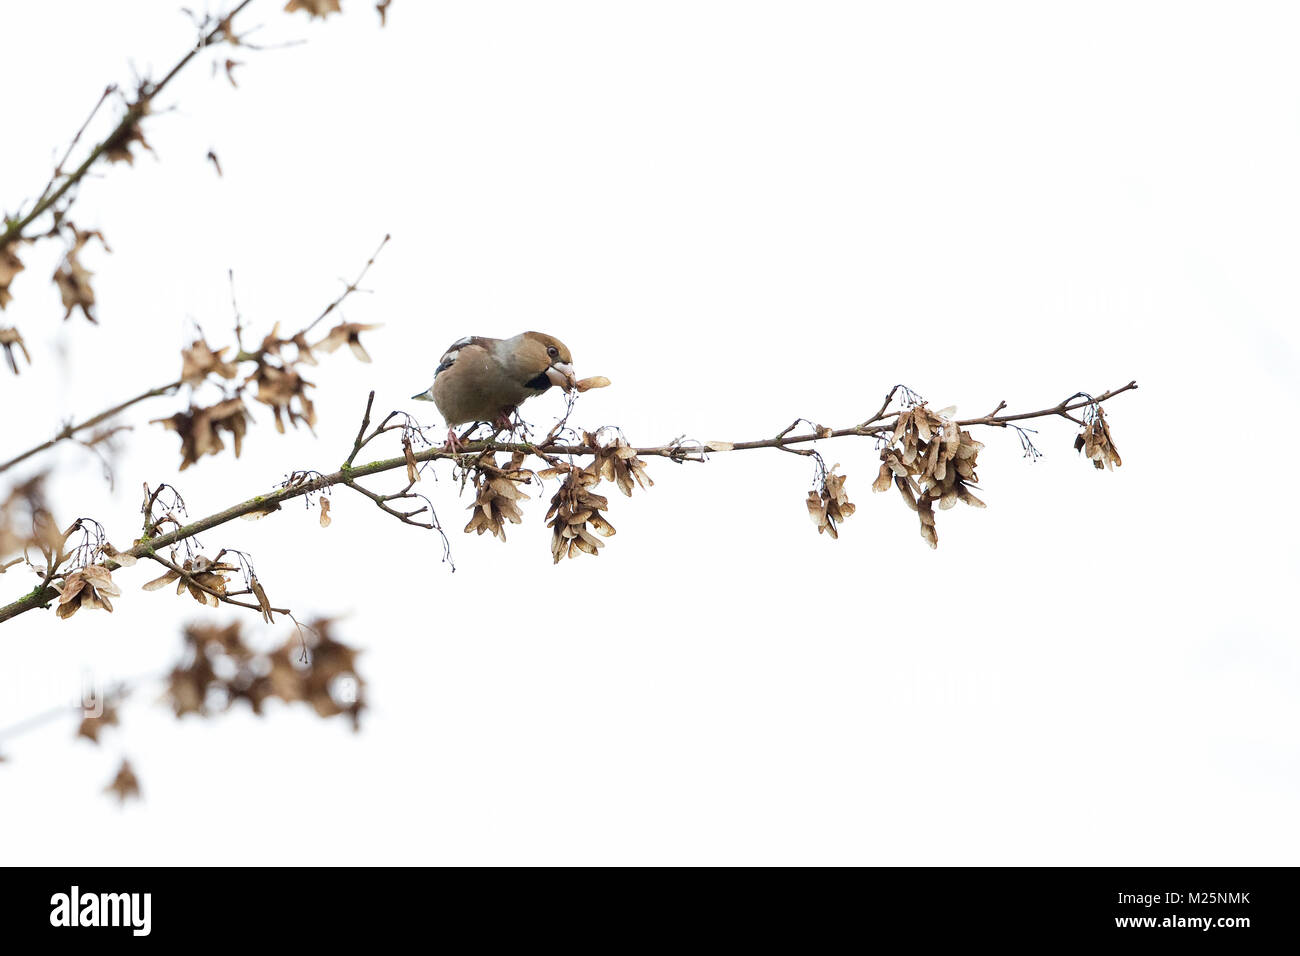 Hawfinch (Coccothraustes coccothraustes) - Stock Image